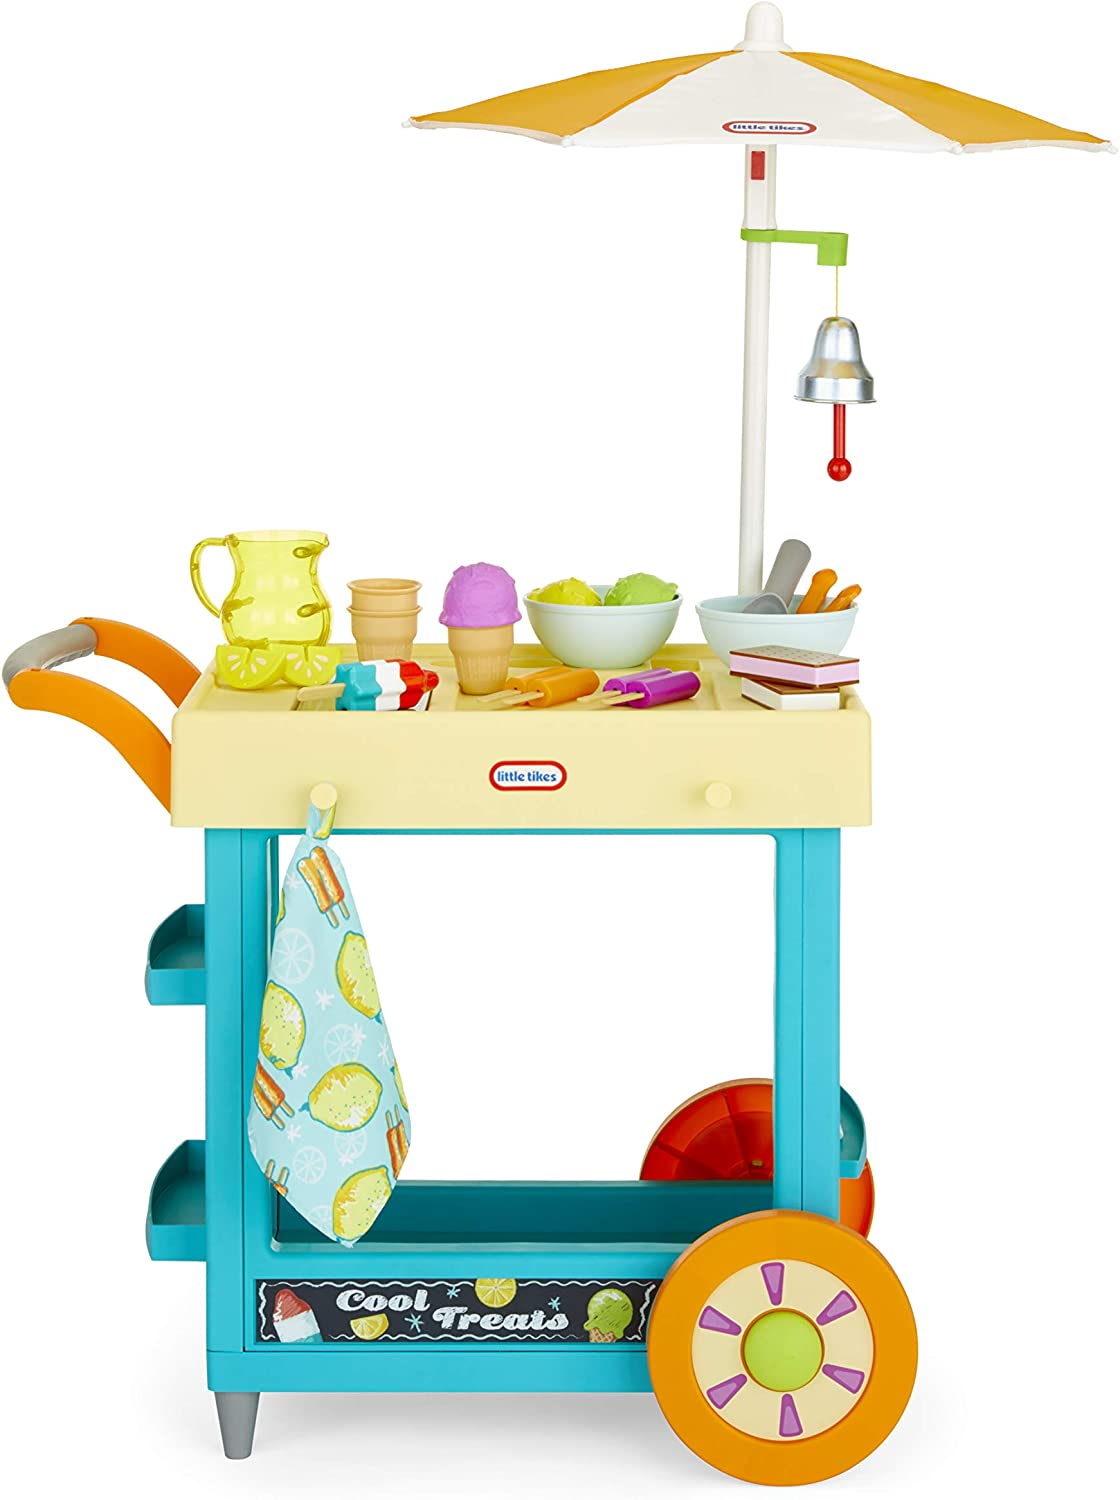 Little Tikes - 2-in-1 Lemonade and Ice Cream Stand (656130)